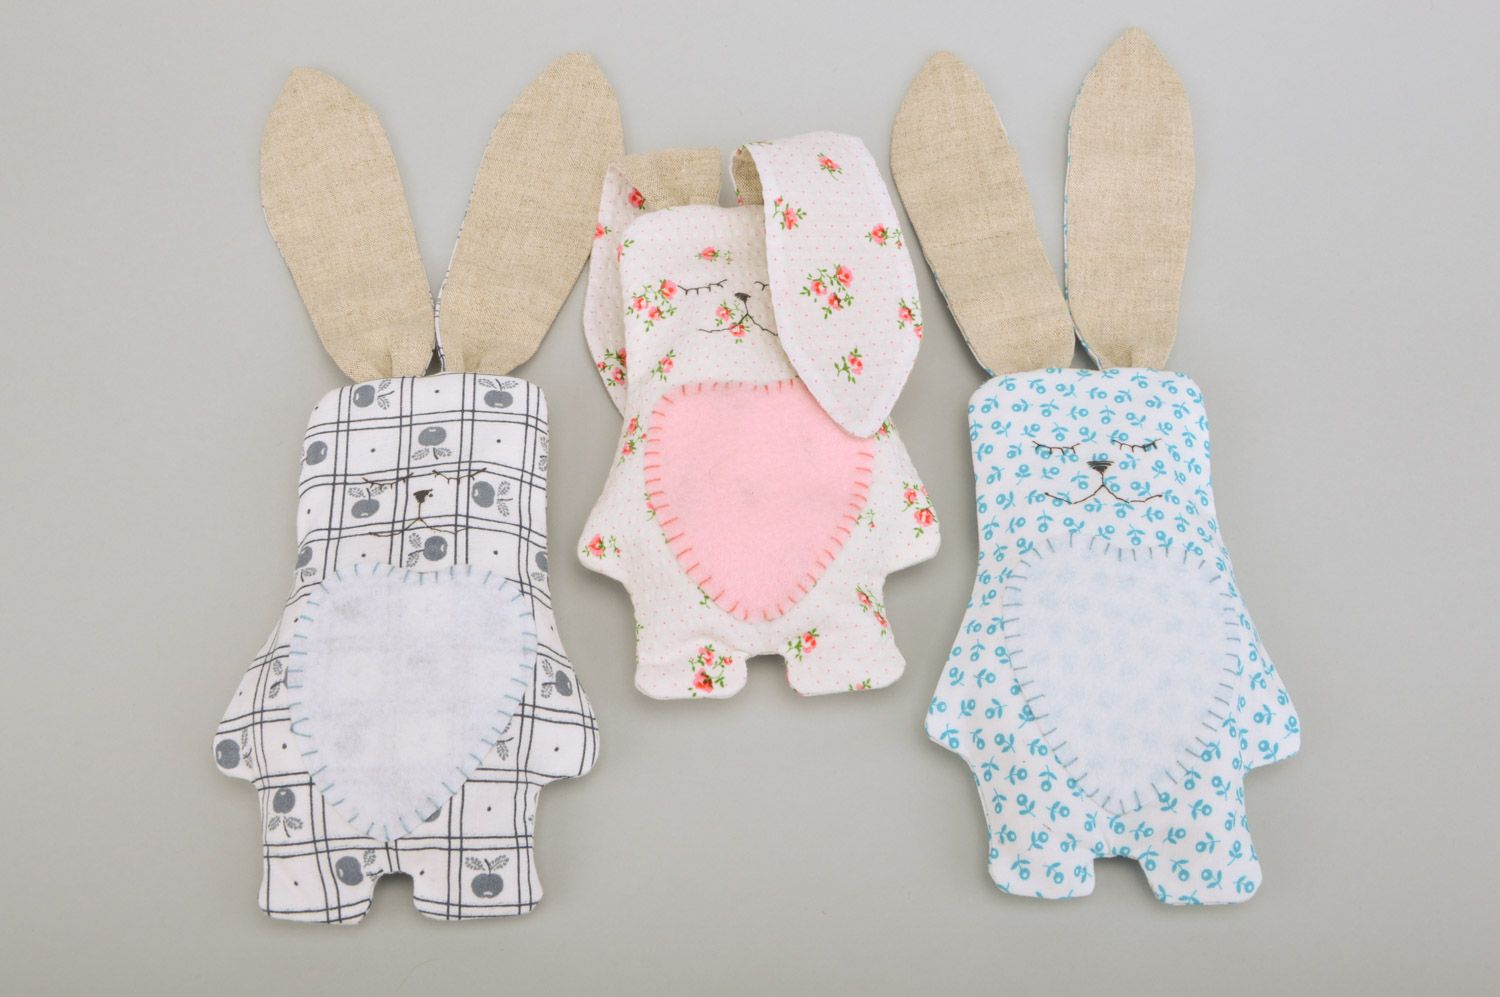 Handmade soft toy rabbit with long ears sewn of cotton fabric with floral print photo 5